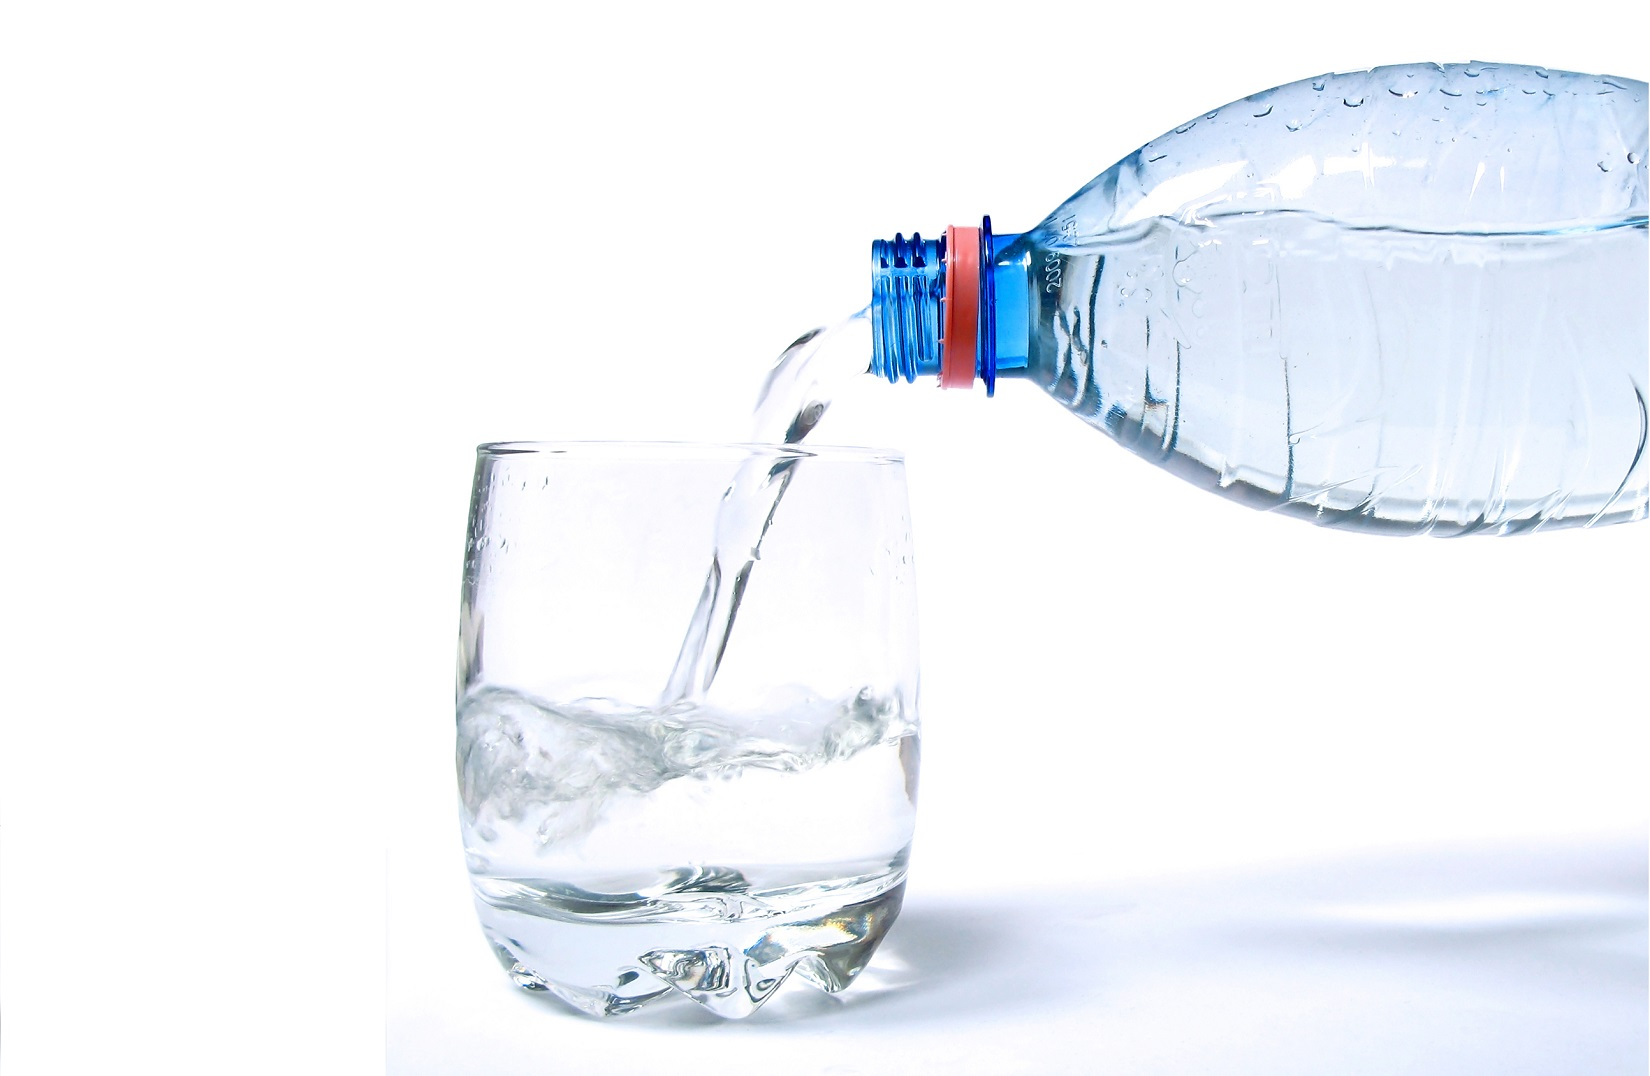 Instant Weight Loss Tips - Drink More Water